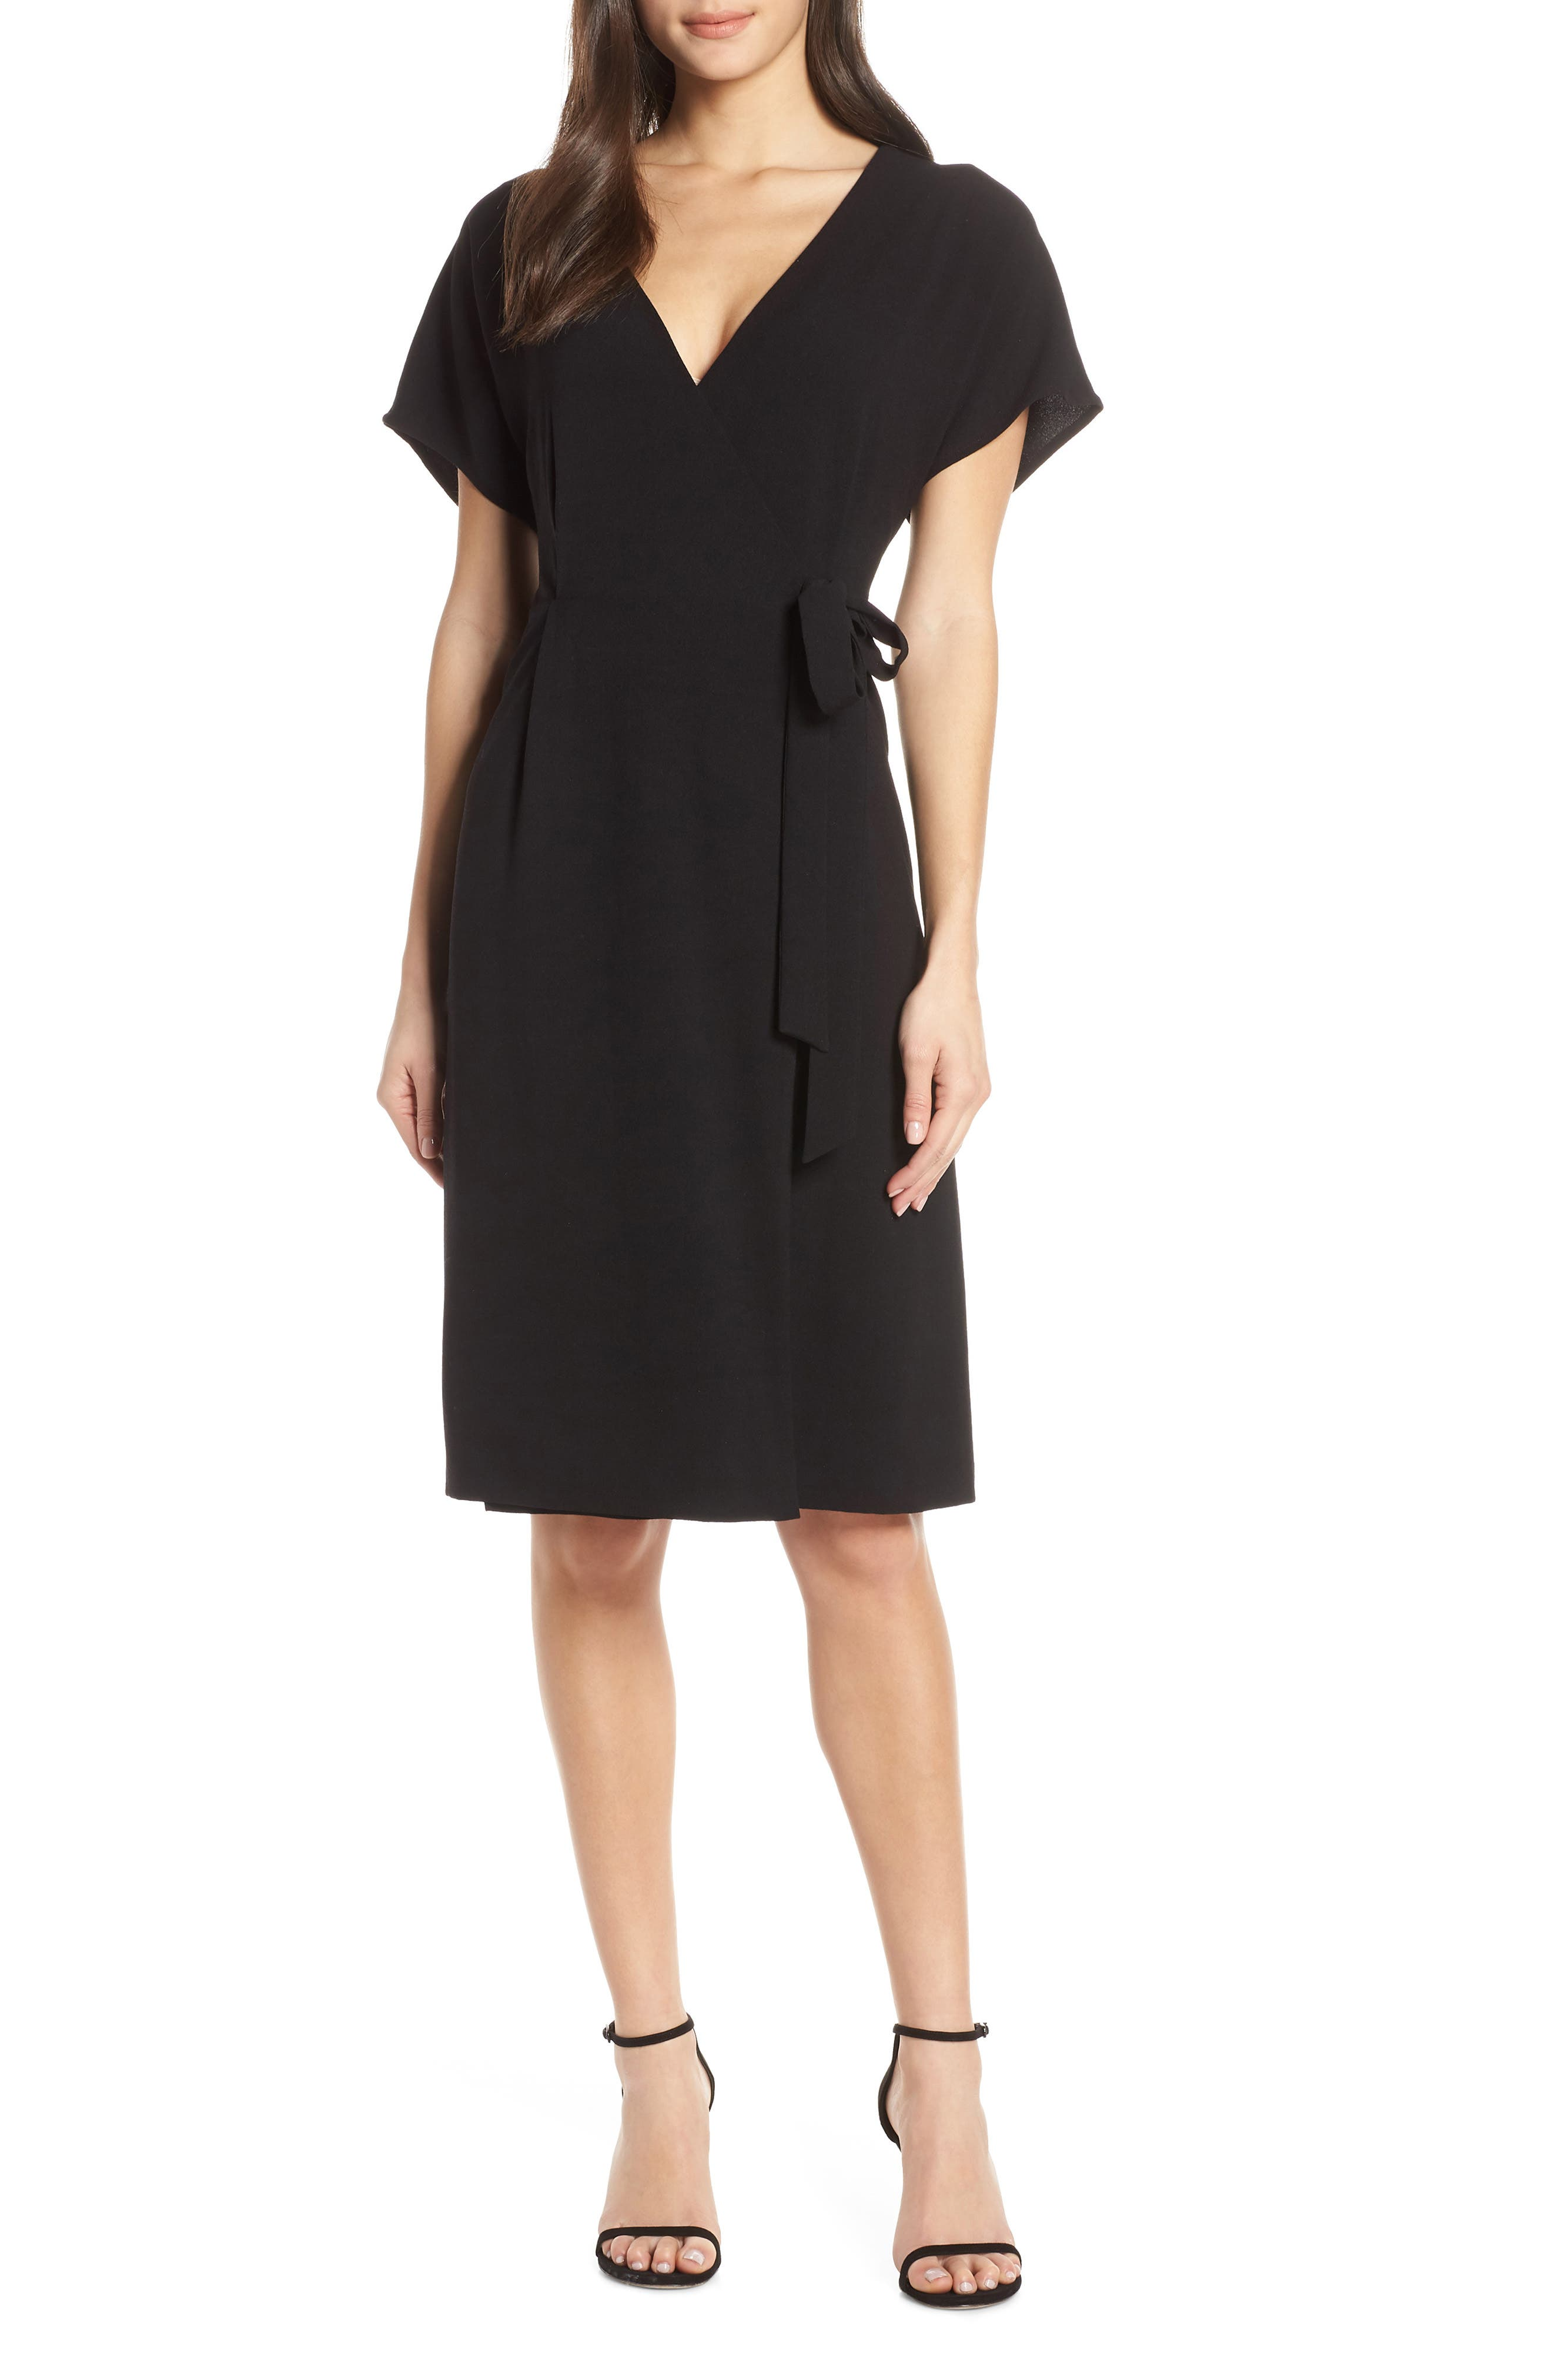 CHARLES HENRY Faux Wrap Dress, Main, color, BLACK